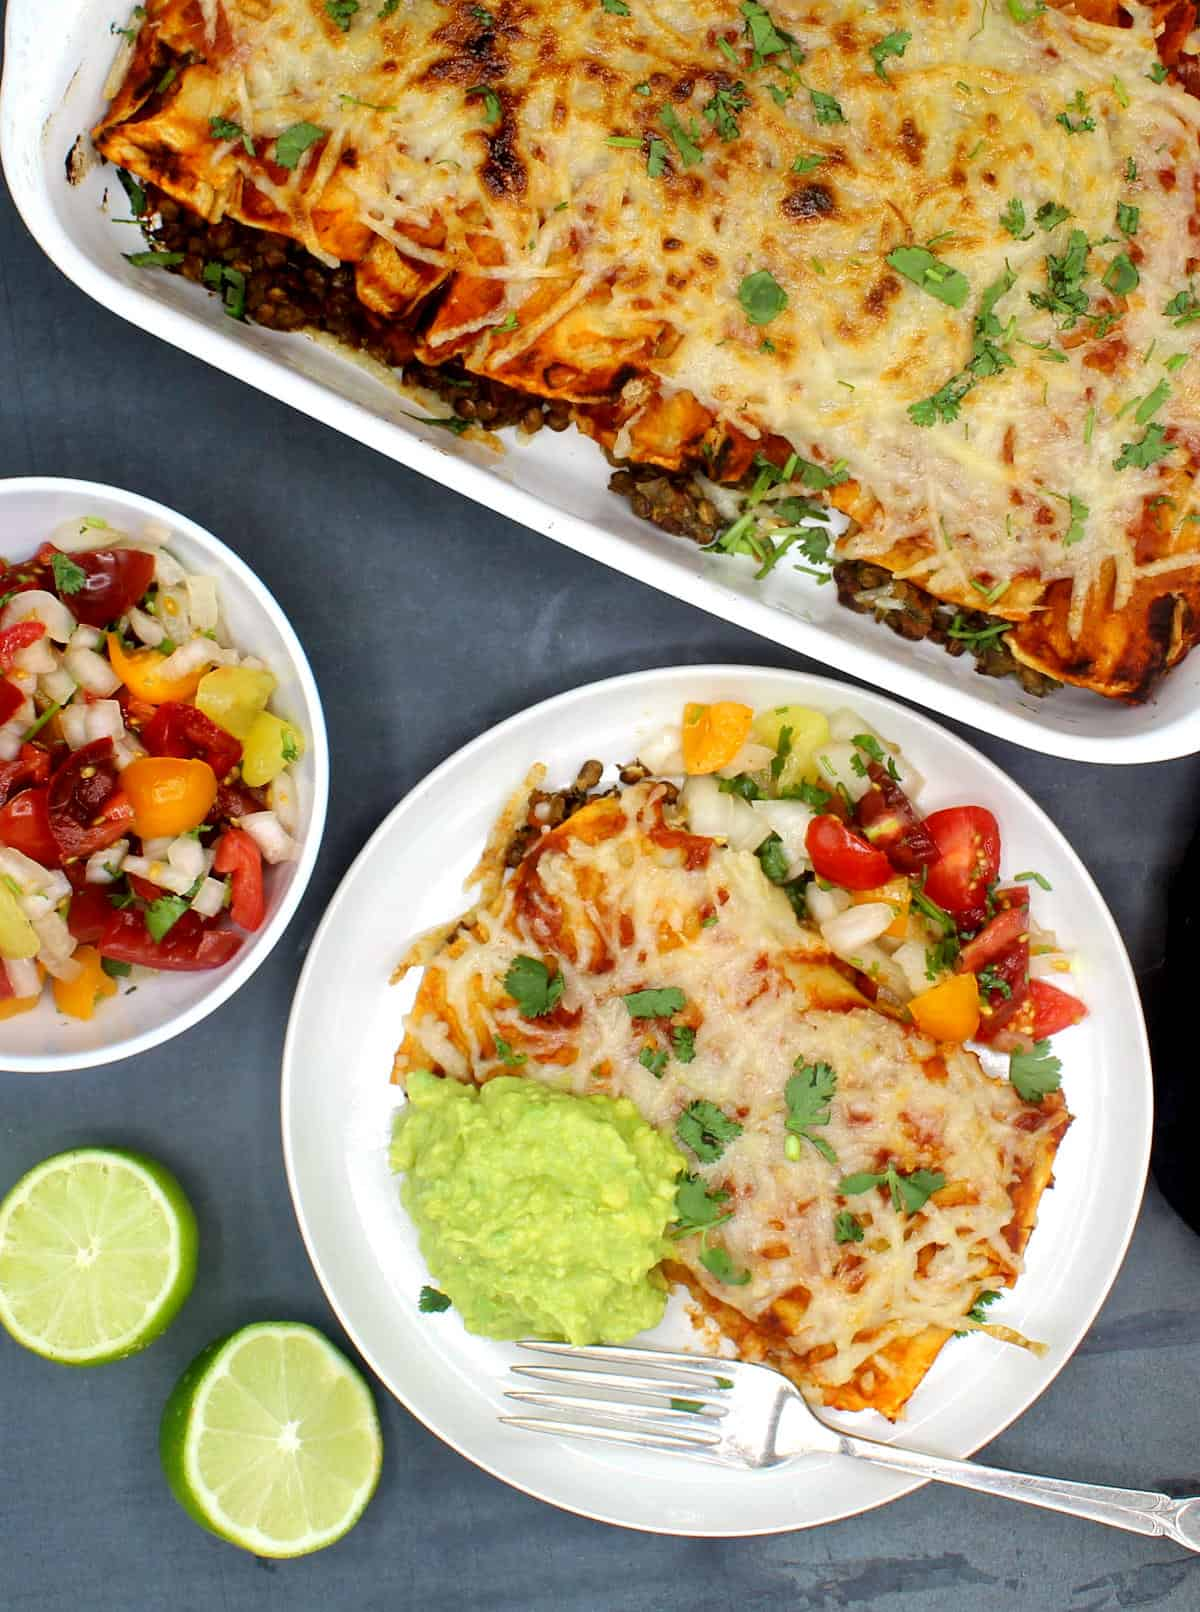 Vegan enchiladas served with a fresh tomato salsa, guacamole on a white plate with a fork. Whole enchilada casserole and limes in background.